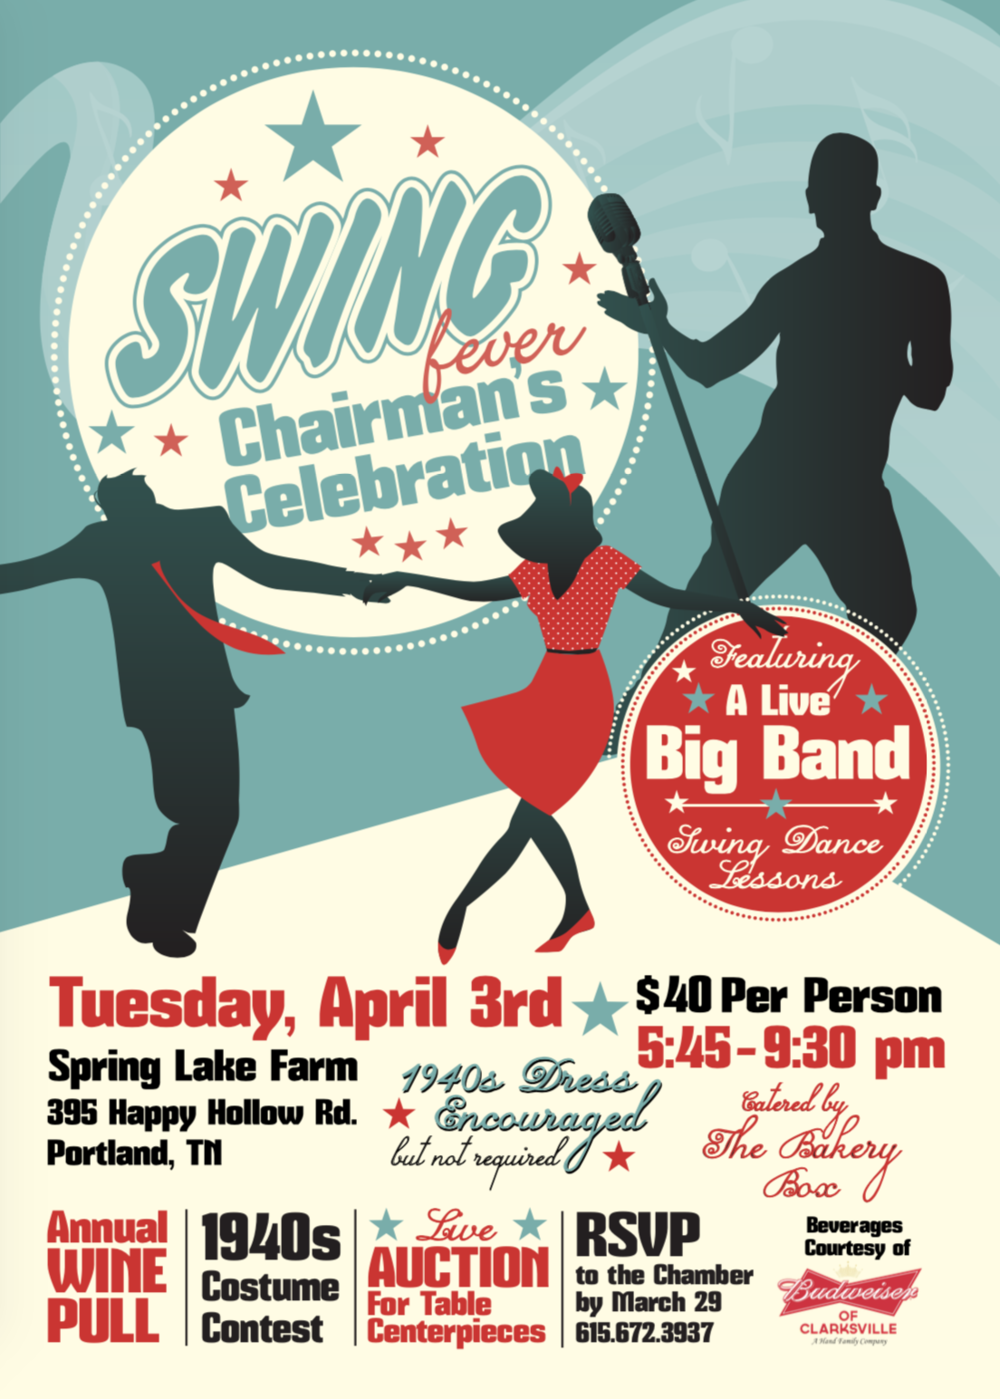 Swing Fever: Chairman's Celebration!